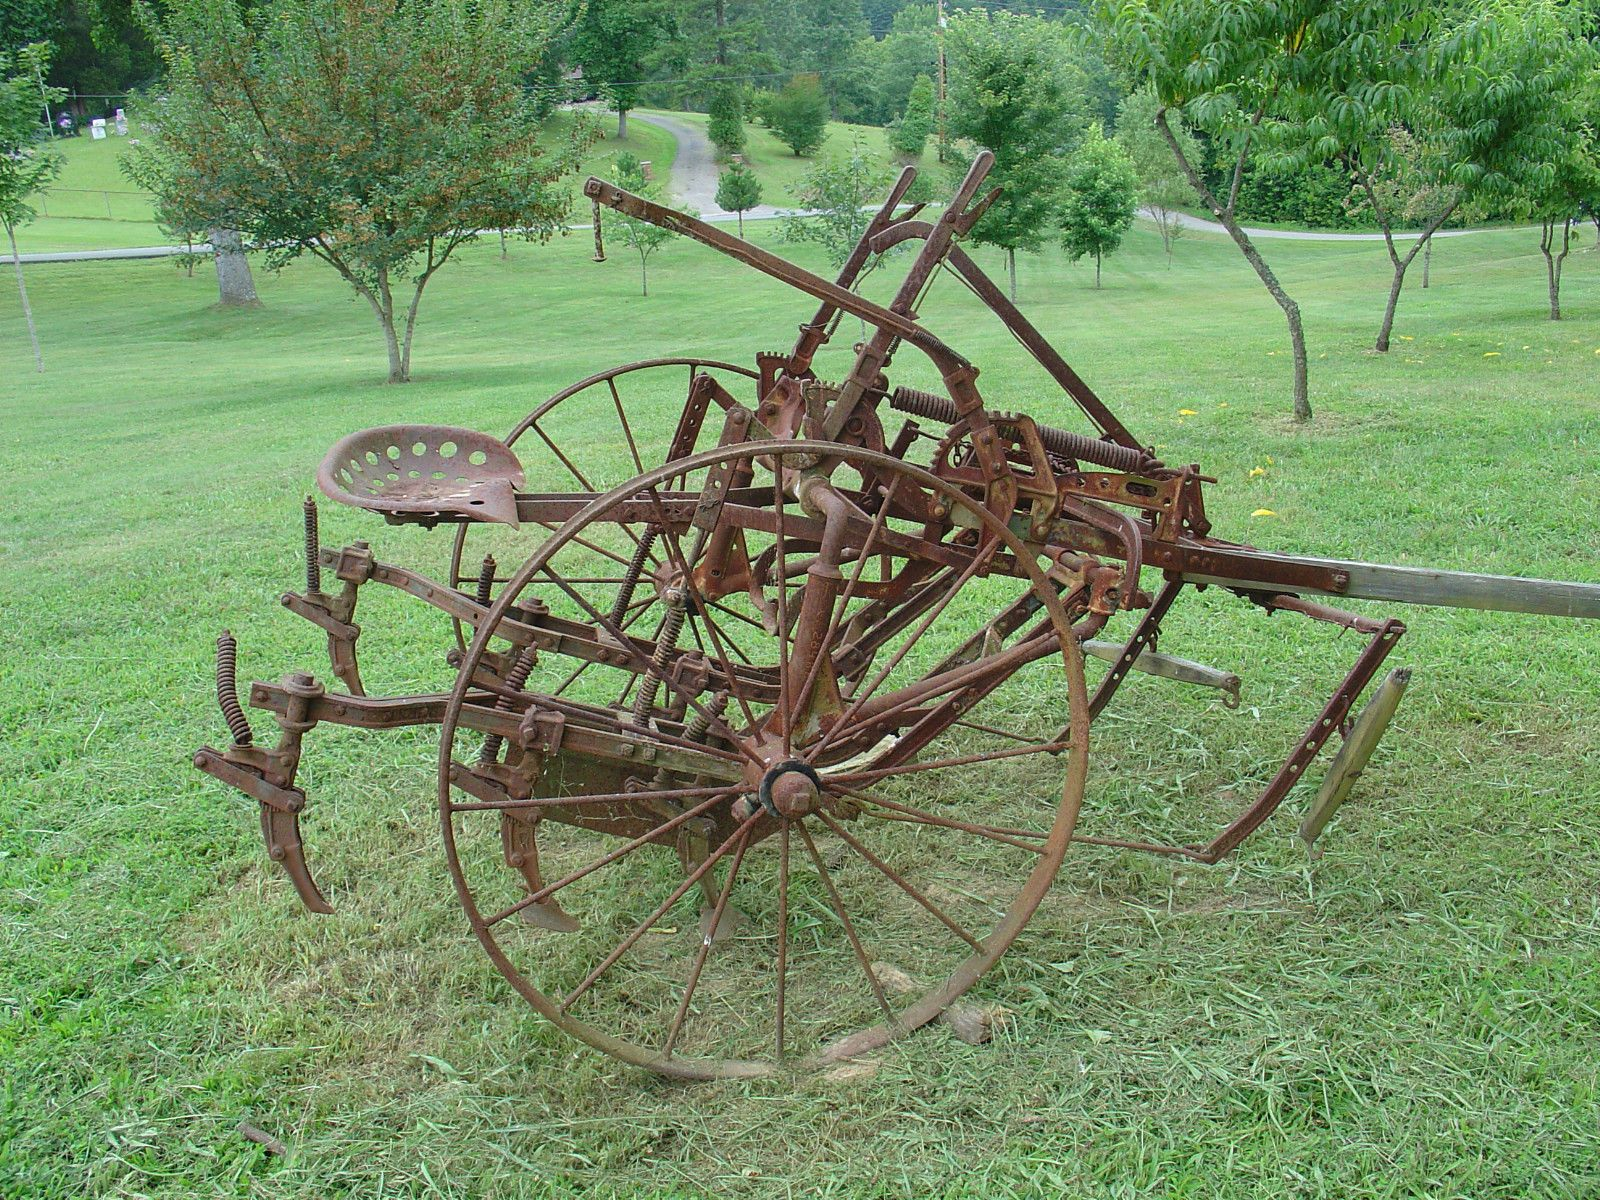 Antique farm equipment horse drawn riding cultivator / plow